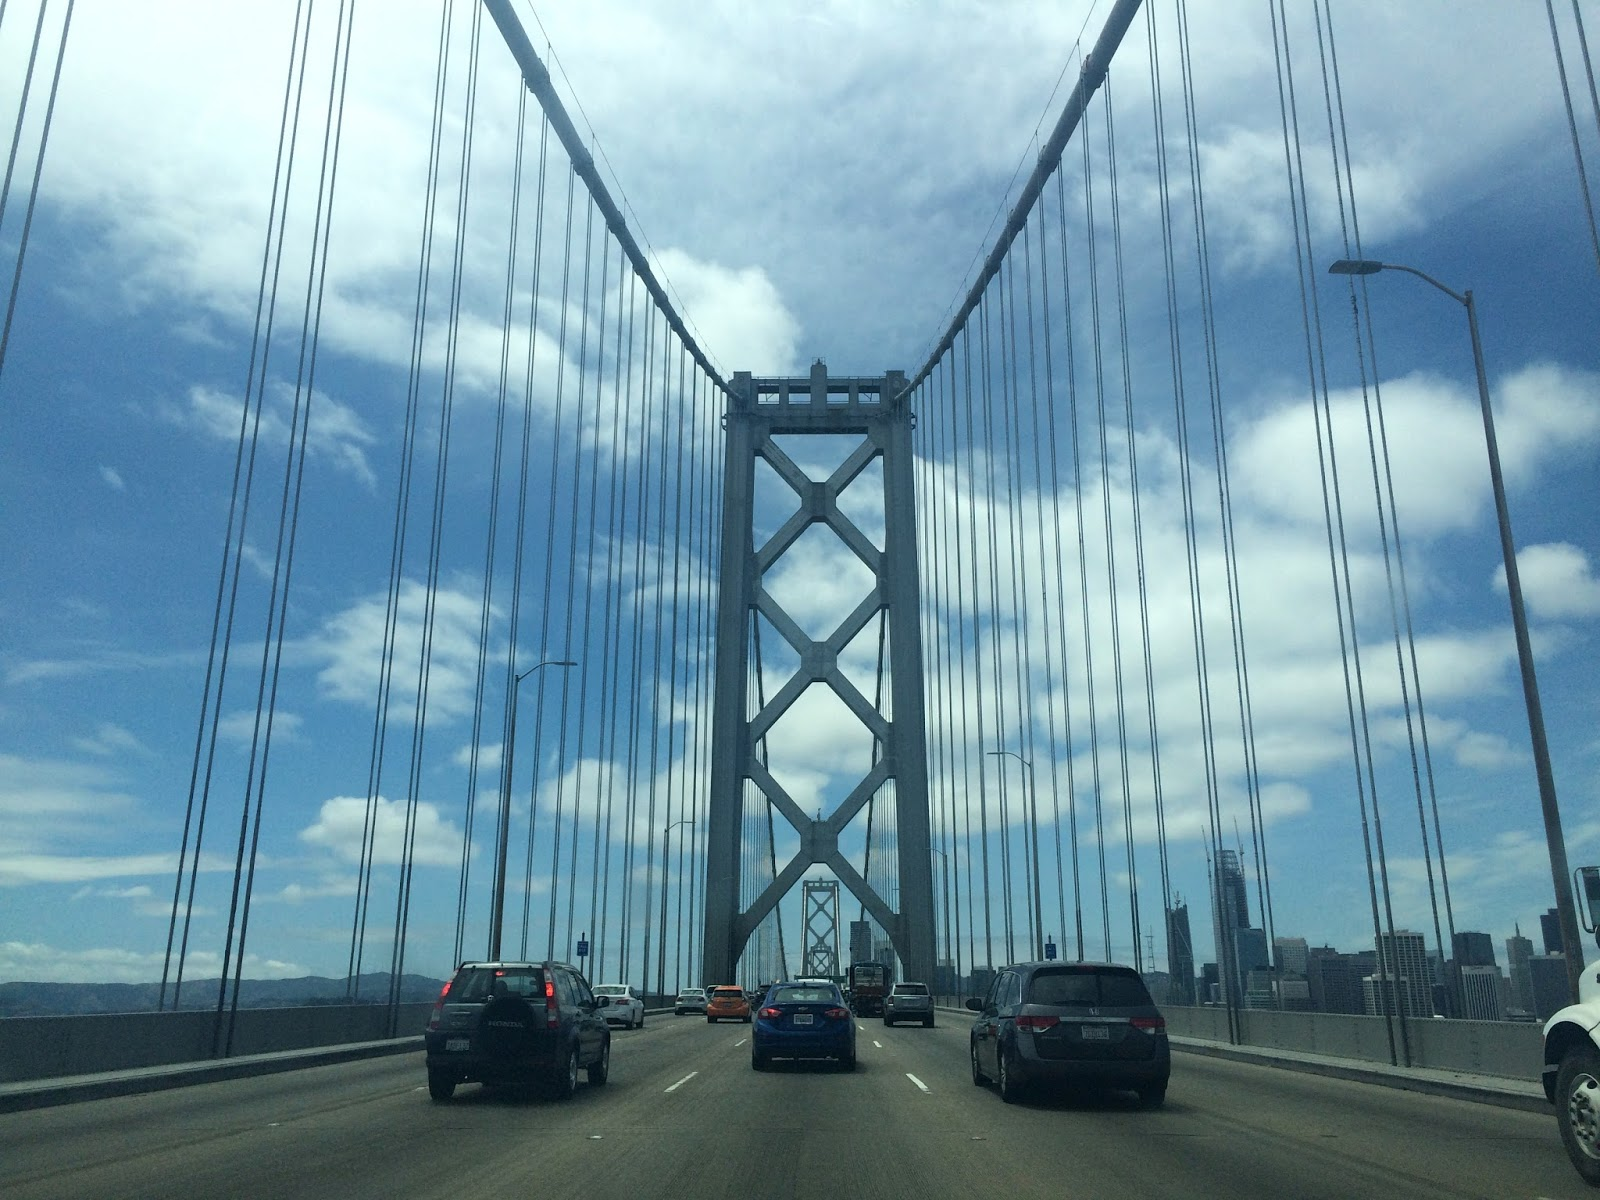 Visiting San Francisco by car